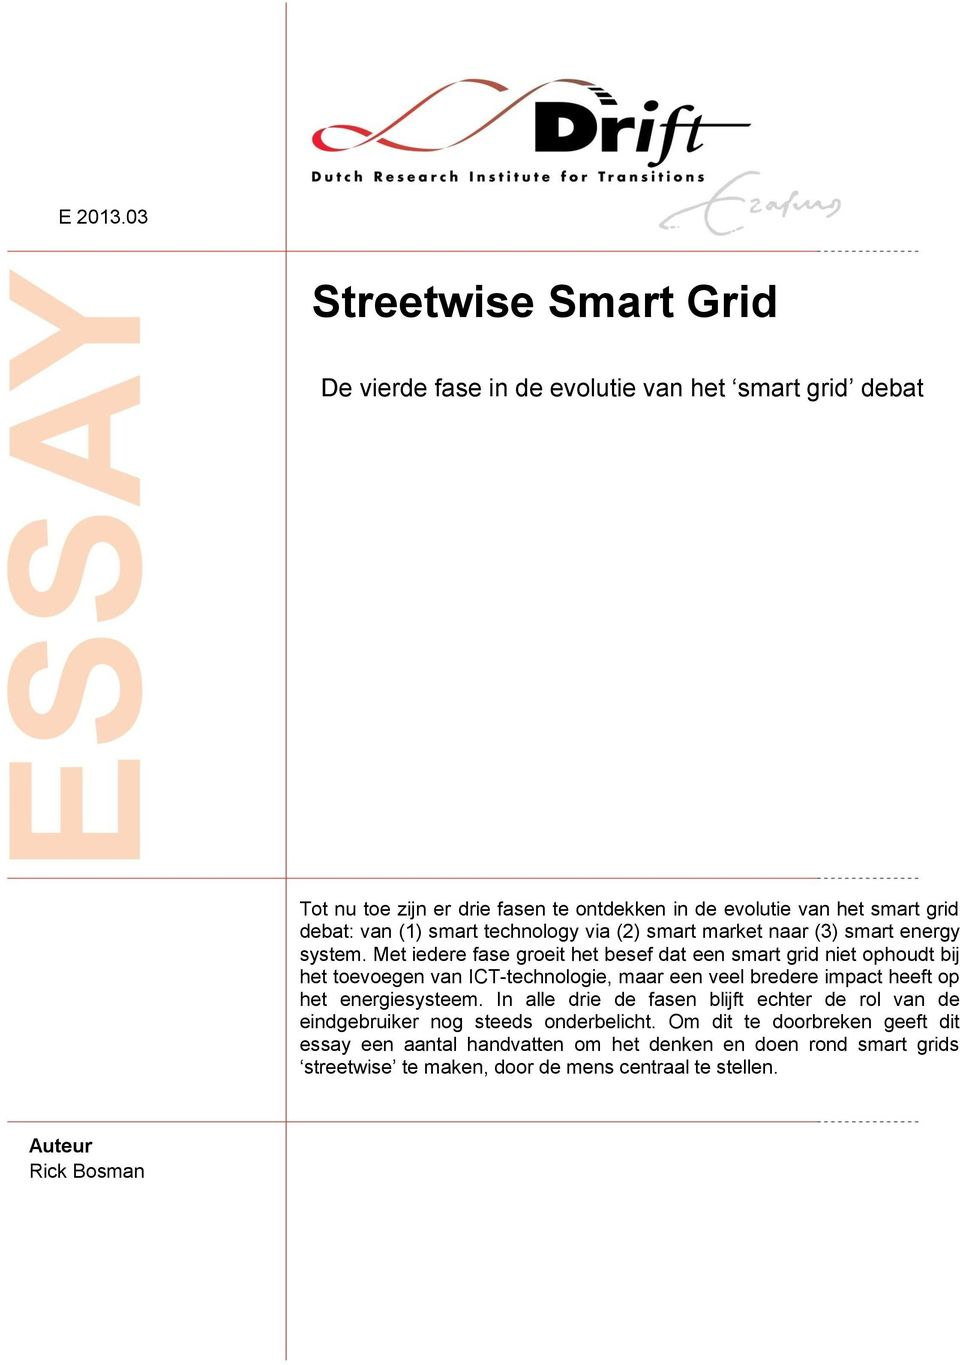 (1) smart technology via (2) smart market naar (3) smart energy system.